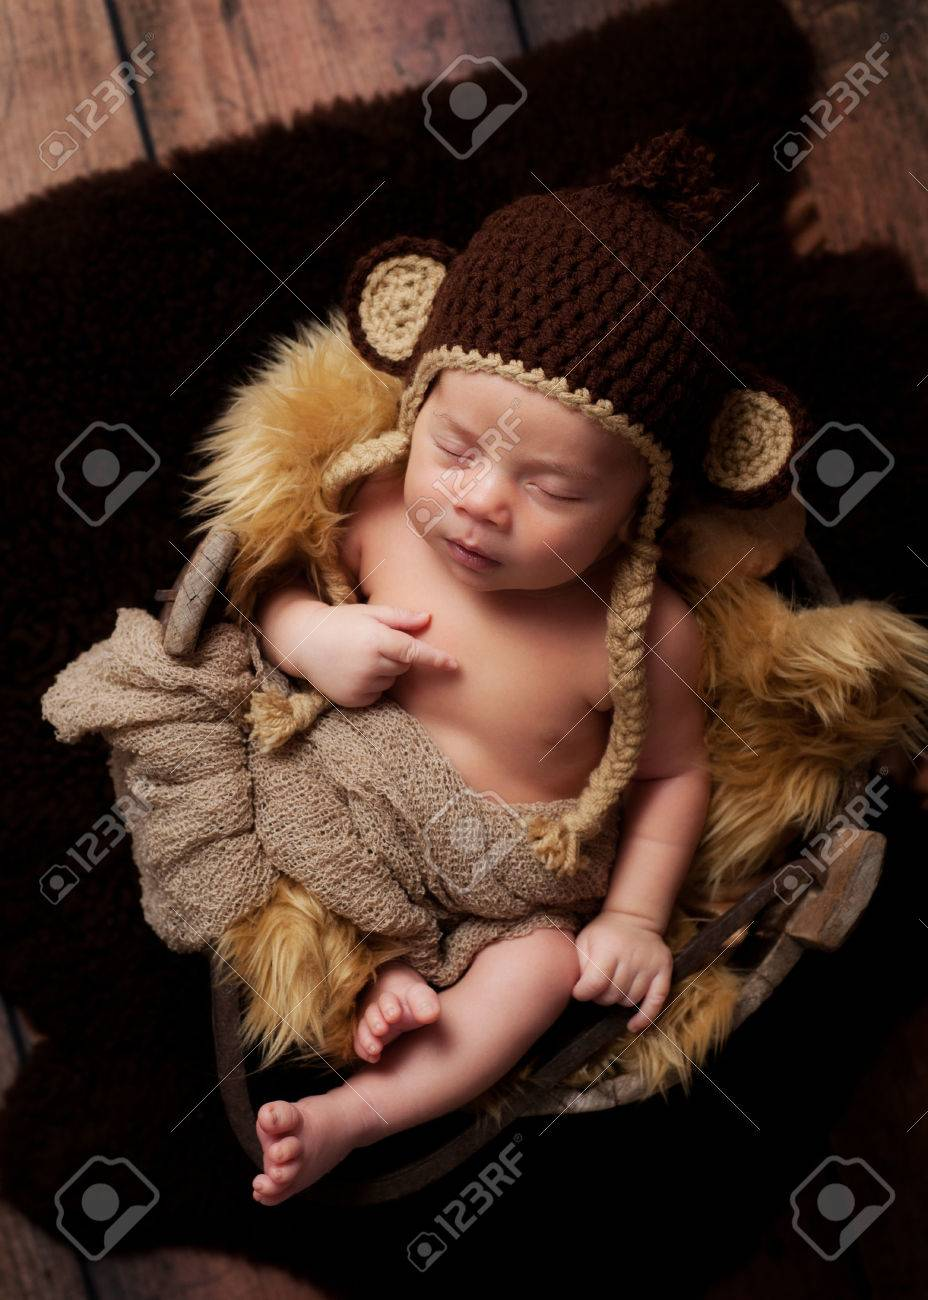 A newborn baby boy wearing a crocheted monkey hat and sleeping in an antique  wooden well 8b3abbf17adc